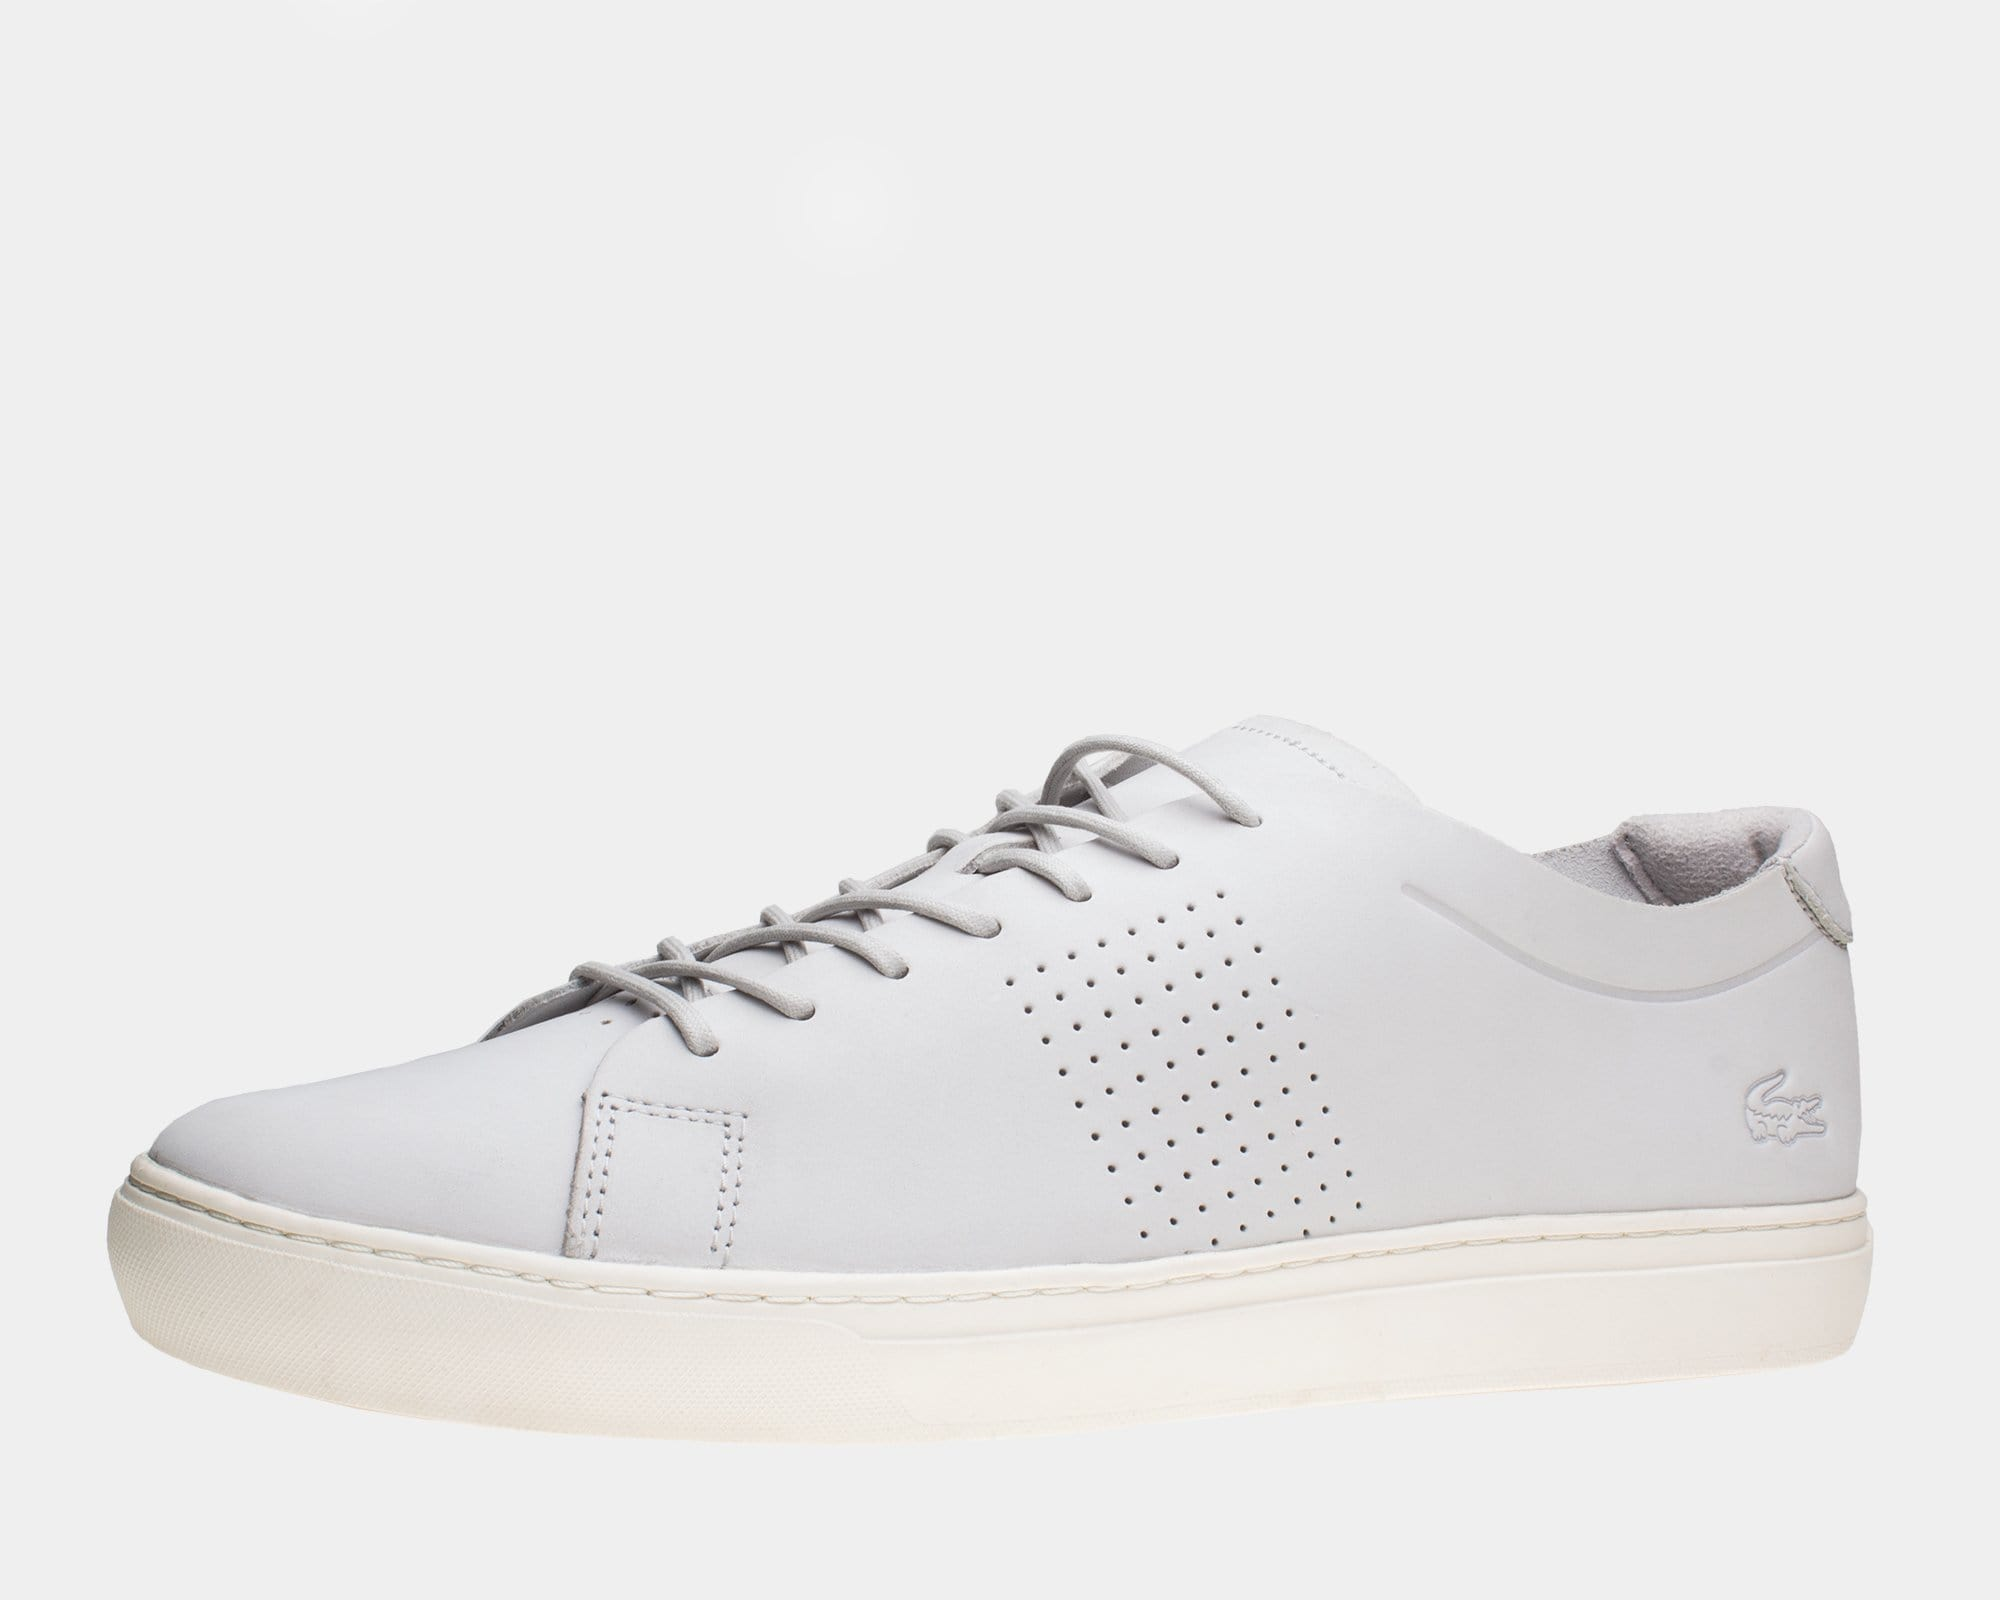 00865e4e3a33a Lacoste L.12.12 Unlined 119 1 Sneakers - Mens Large Sizes